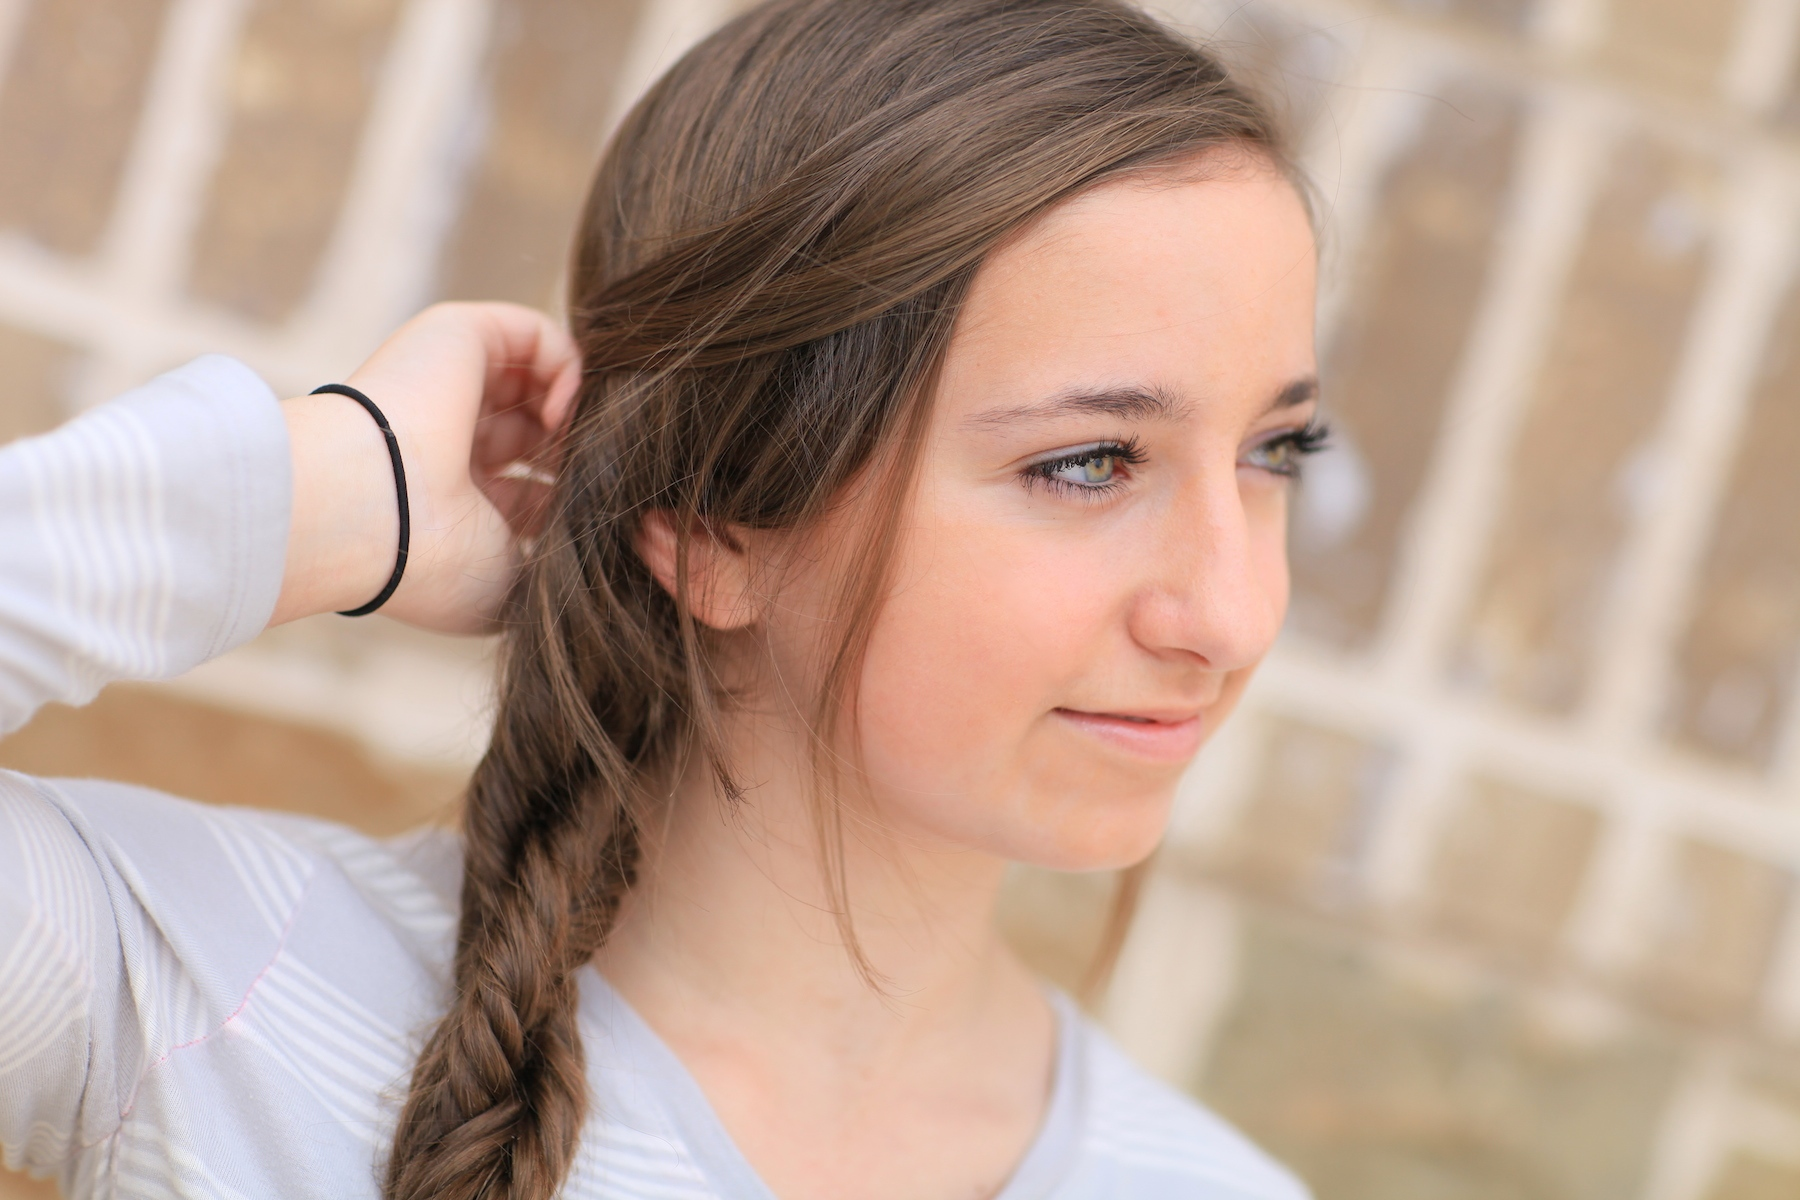 Cute Hairstyles with Braids for Girls 12 Year Olds